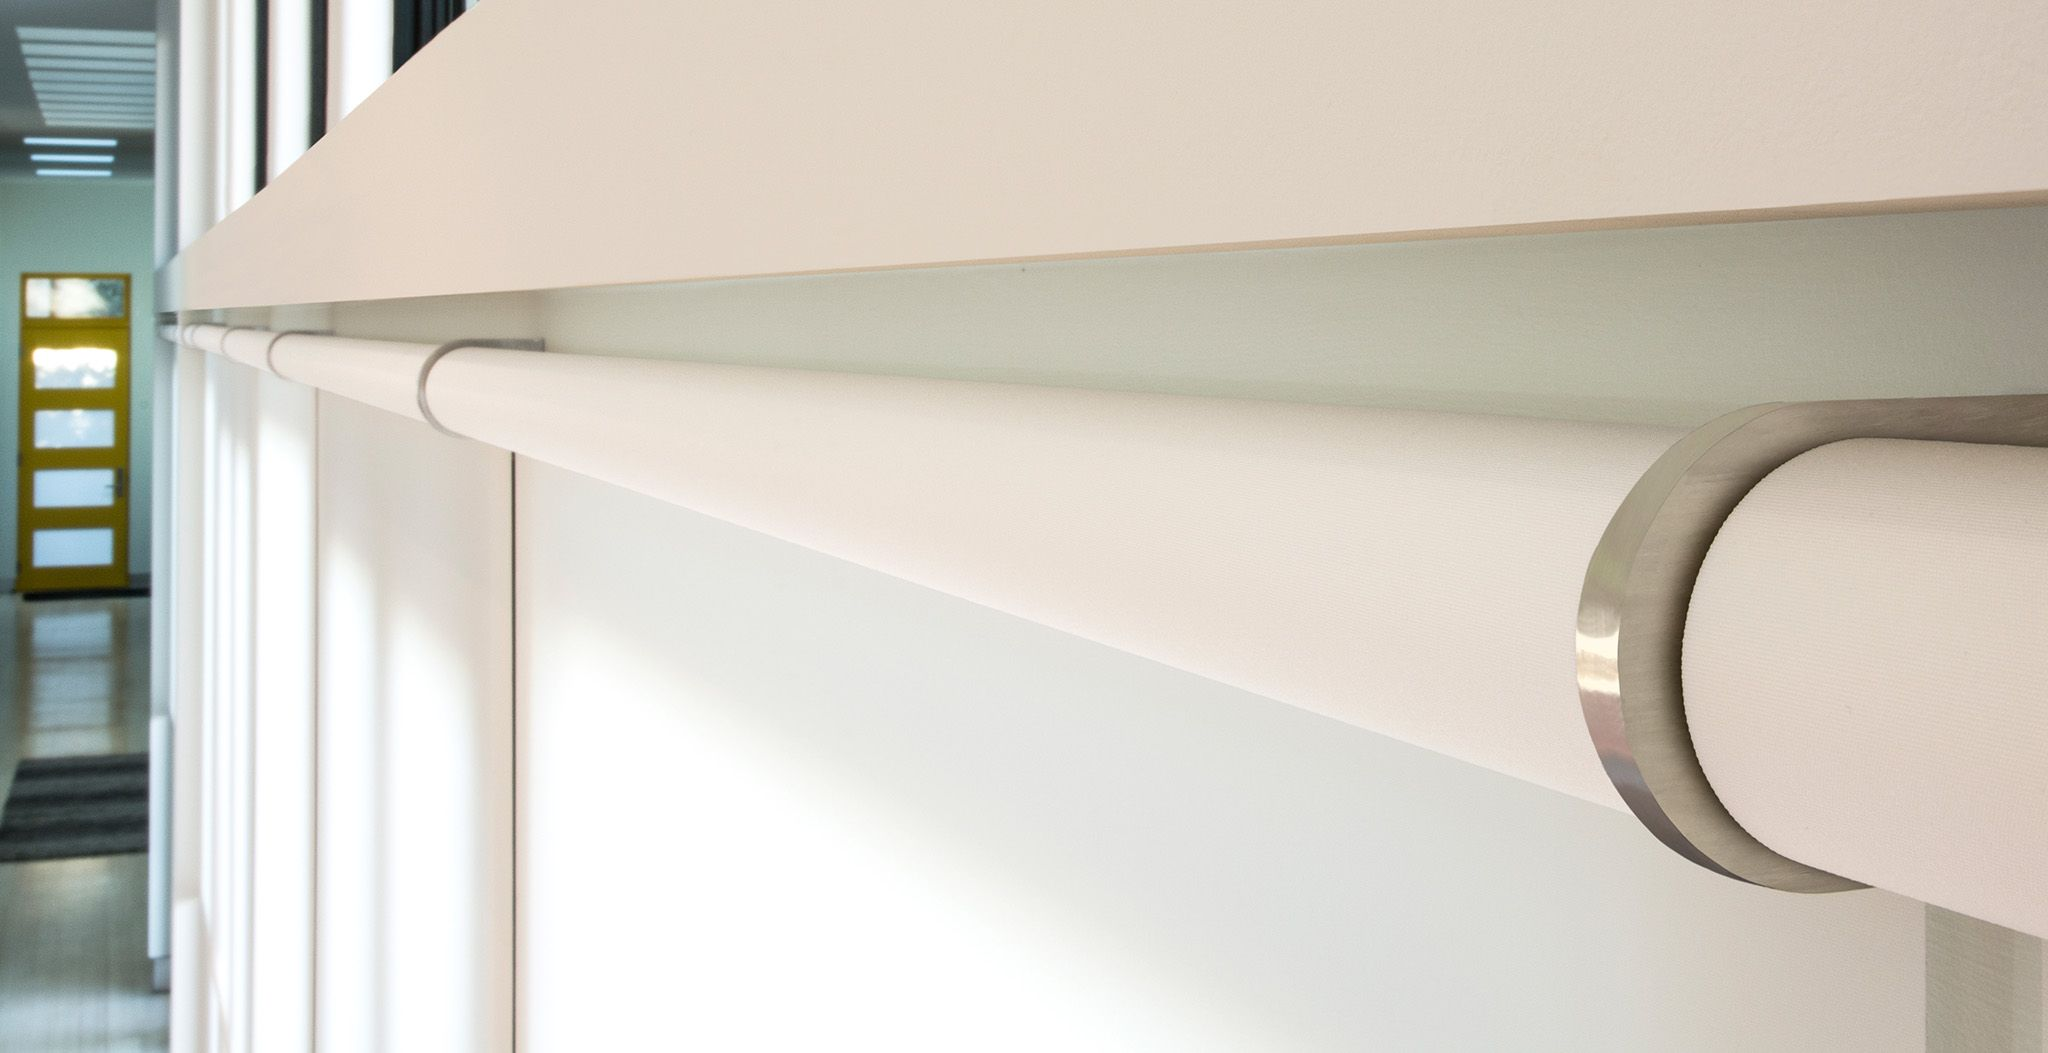 Shades That Hide In Plain Sight A Close Up View J Geiger Shading Technology Motorized Window Shades